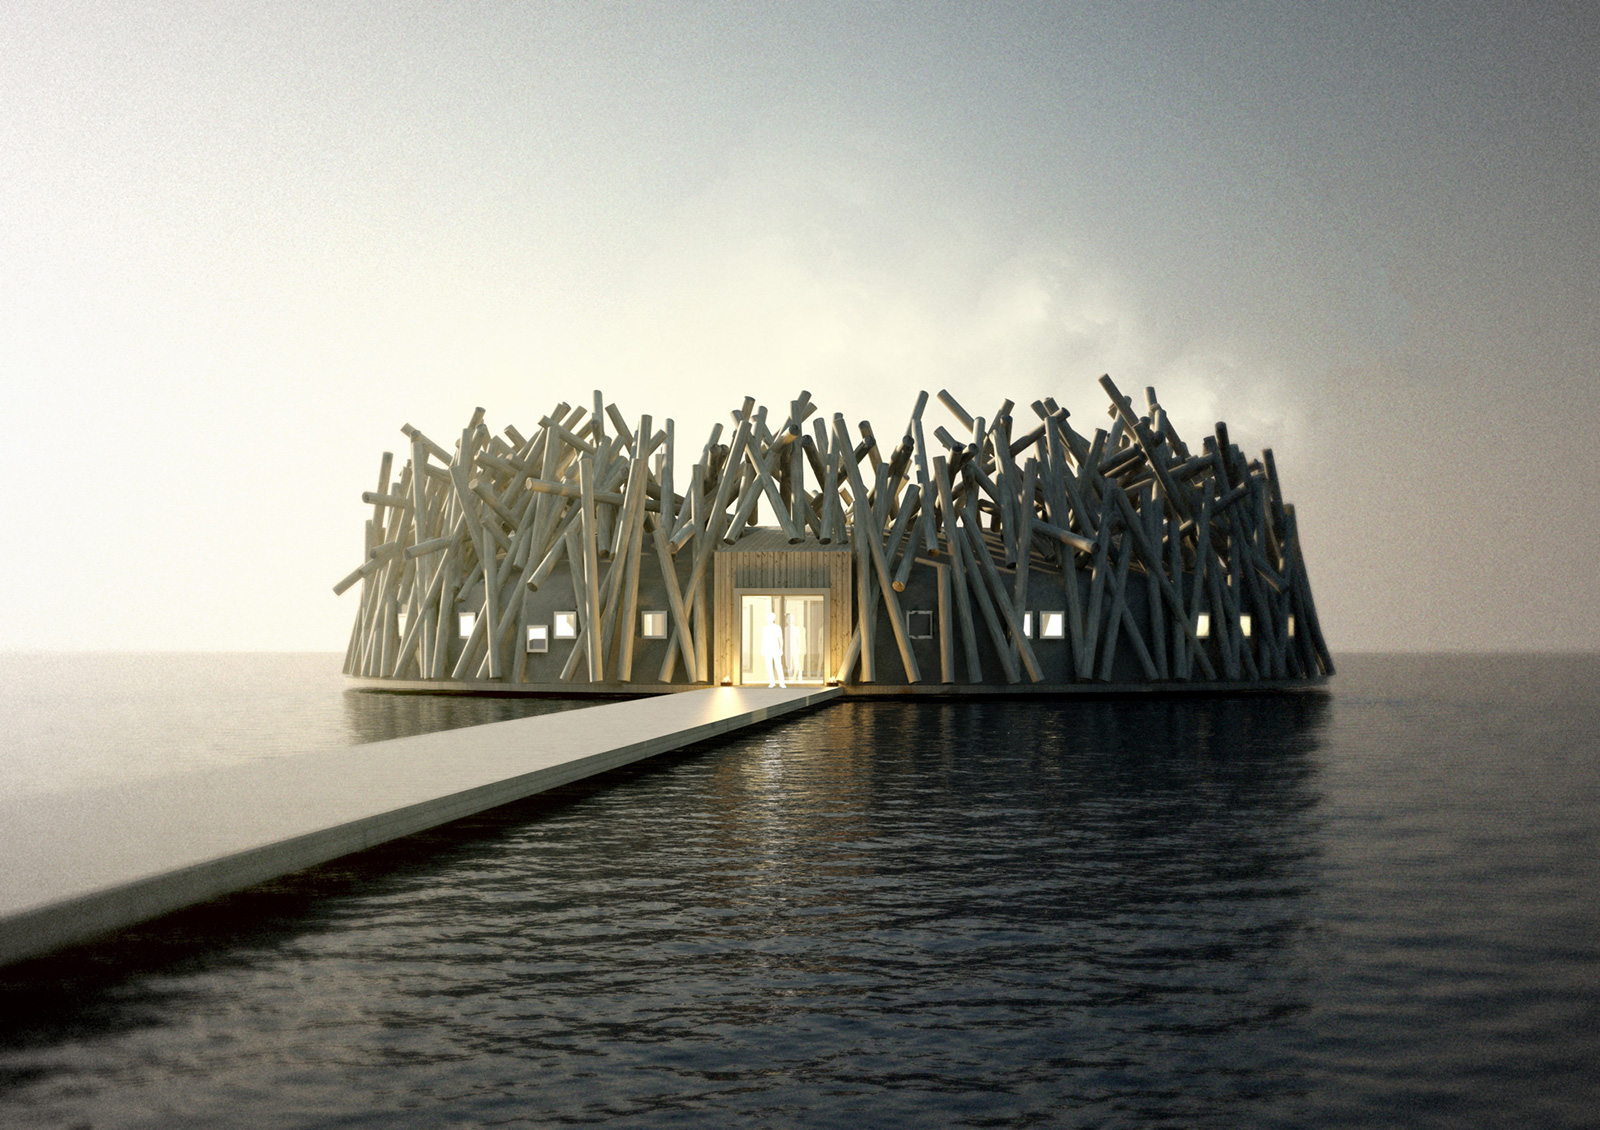 Render of the Arctic Bath spa retreat in Harads, Swedish Lapland